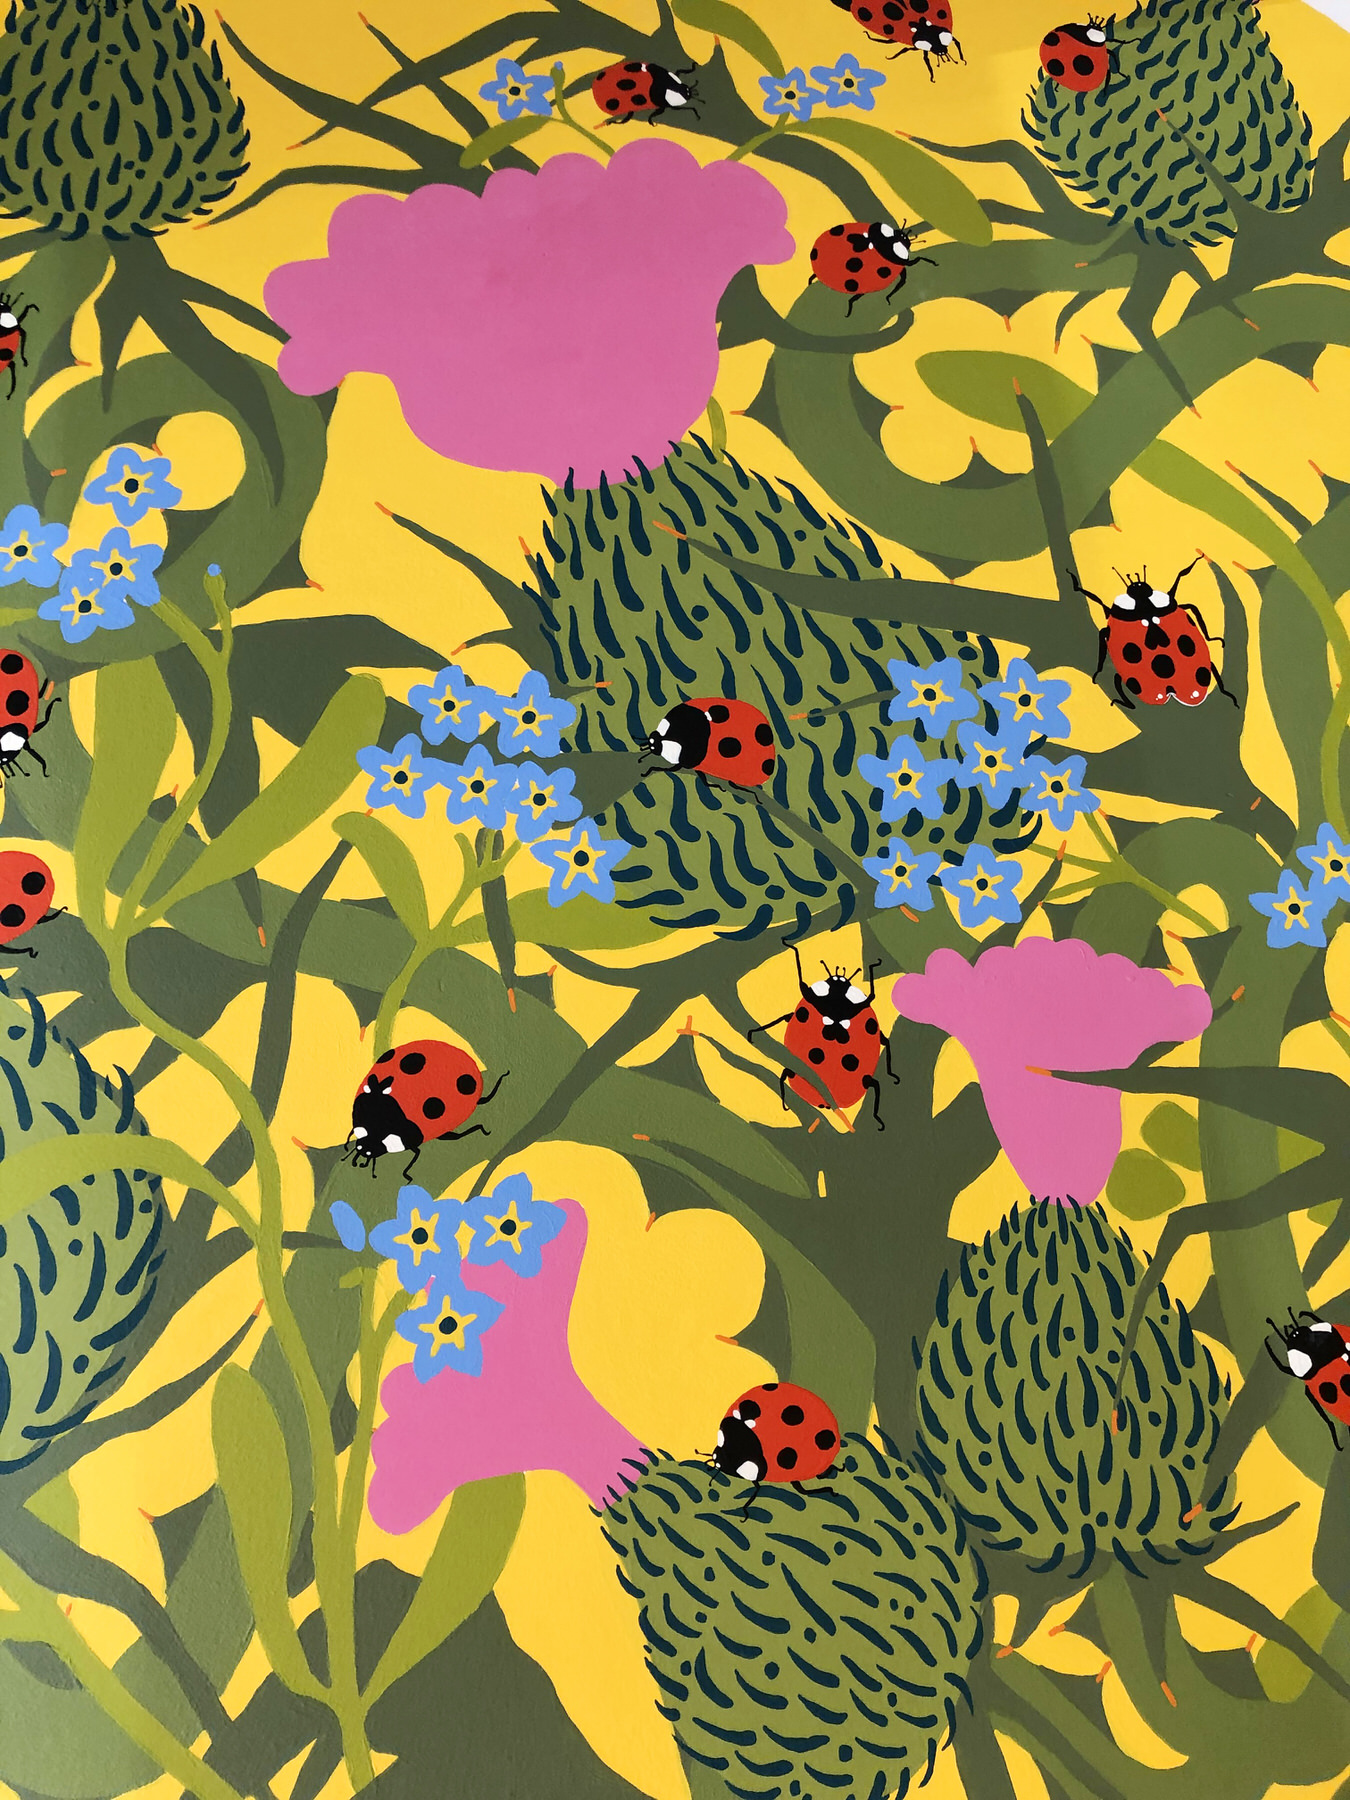 Closeup of Bakery Honeytrap mural showing a ladybird on a thistle plant surrounded by forget-me-not flowers_©Ida Henrich